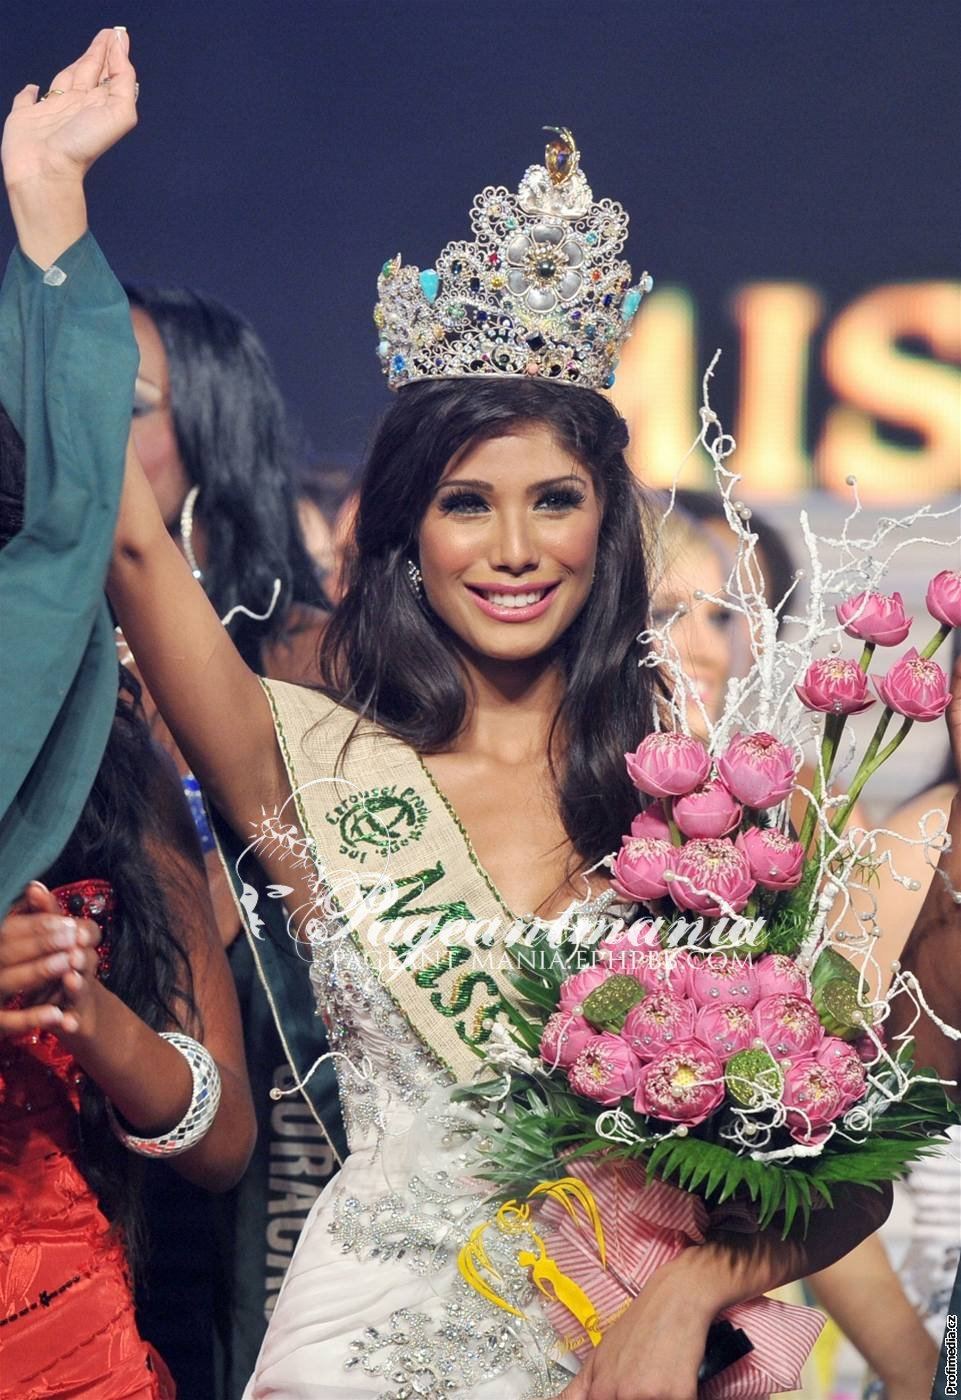 Official thread of MISS EARTH 2010 - Nicole Faria (India) Ved37911